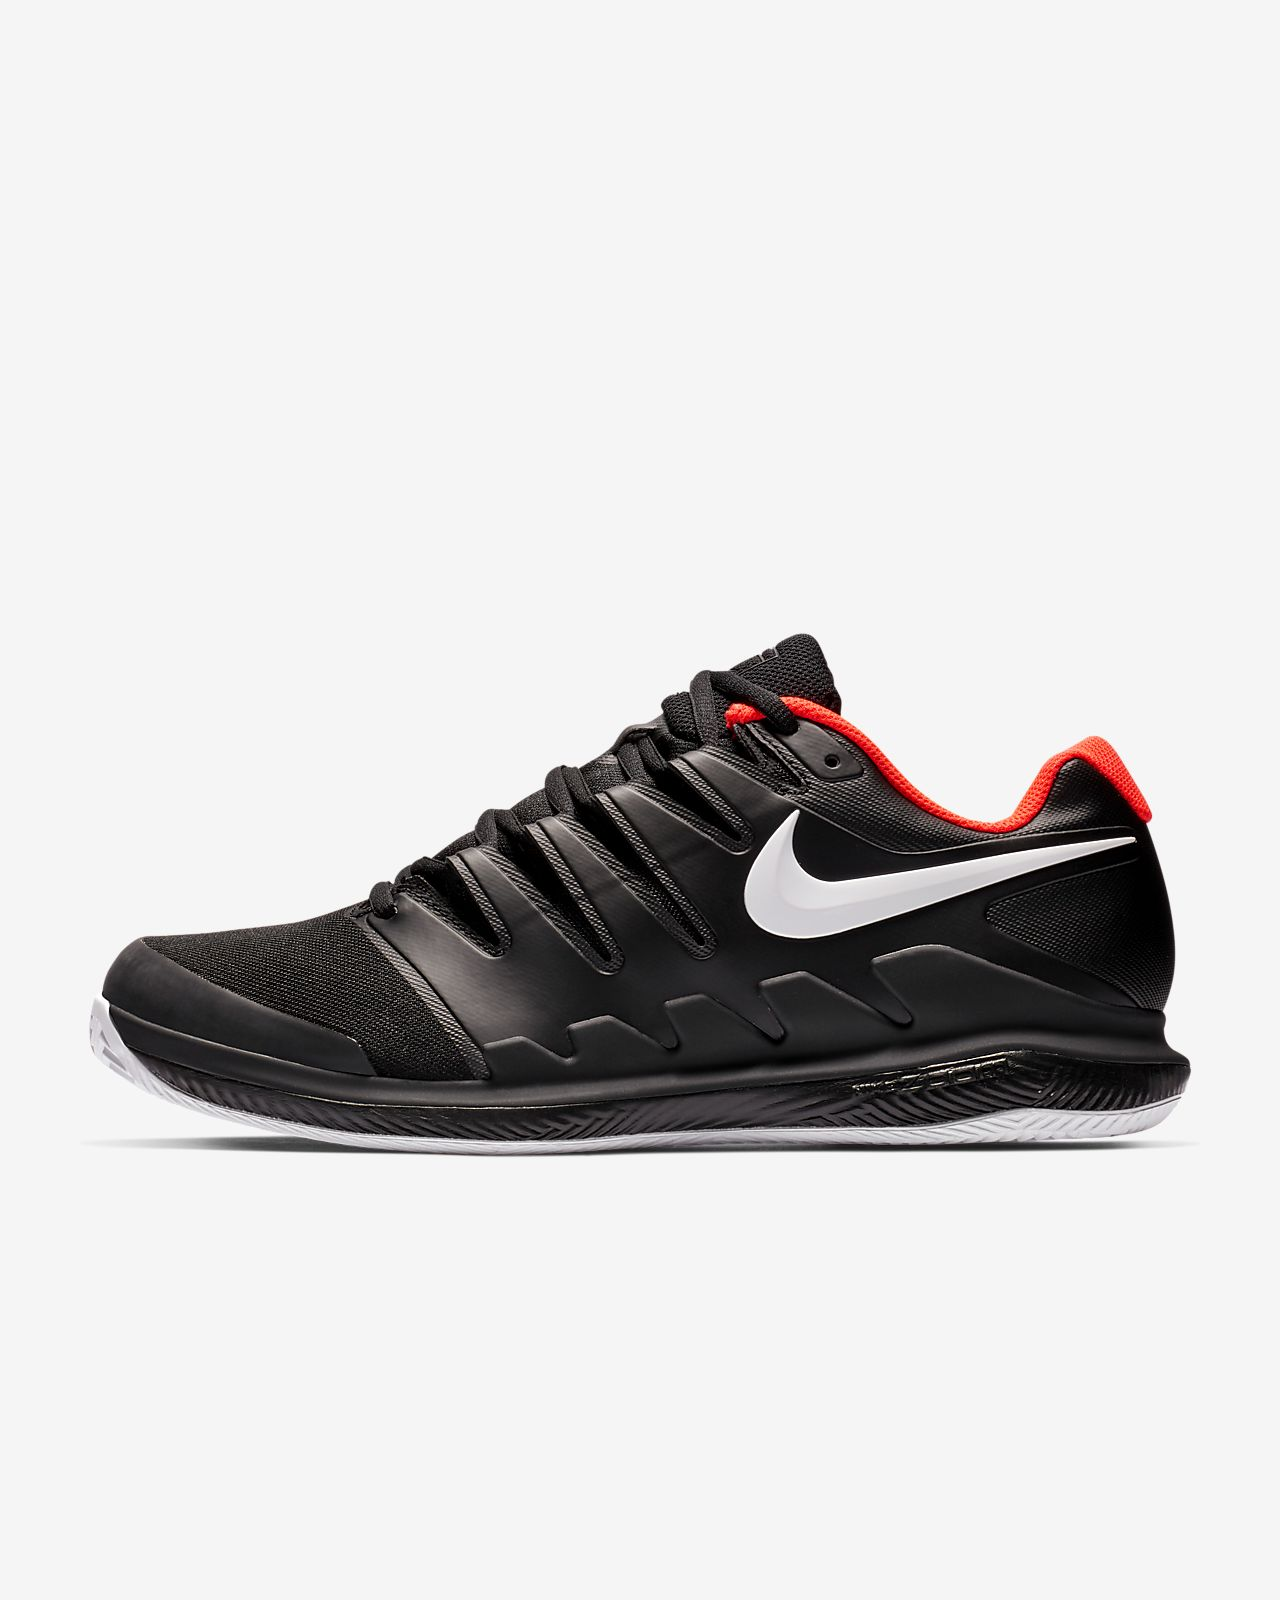 Nike Air Zoom Vapor X Clay Men s Tennis Shoe. Nike.com GB 2034dd6665b